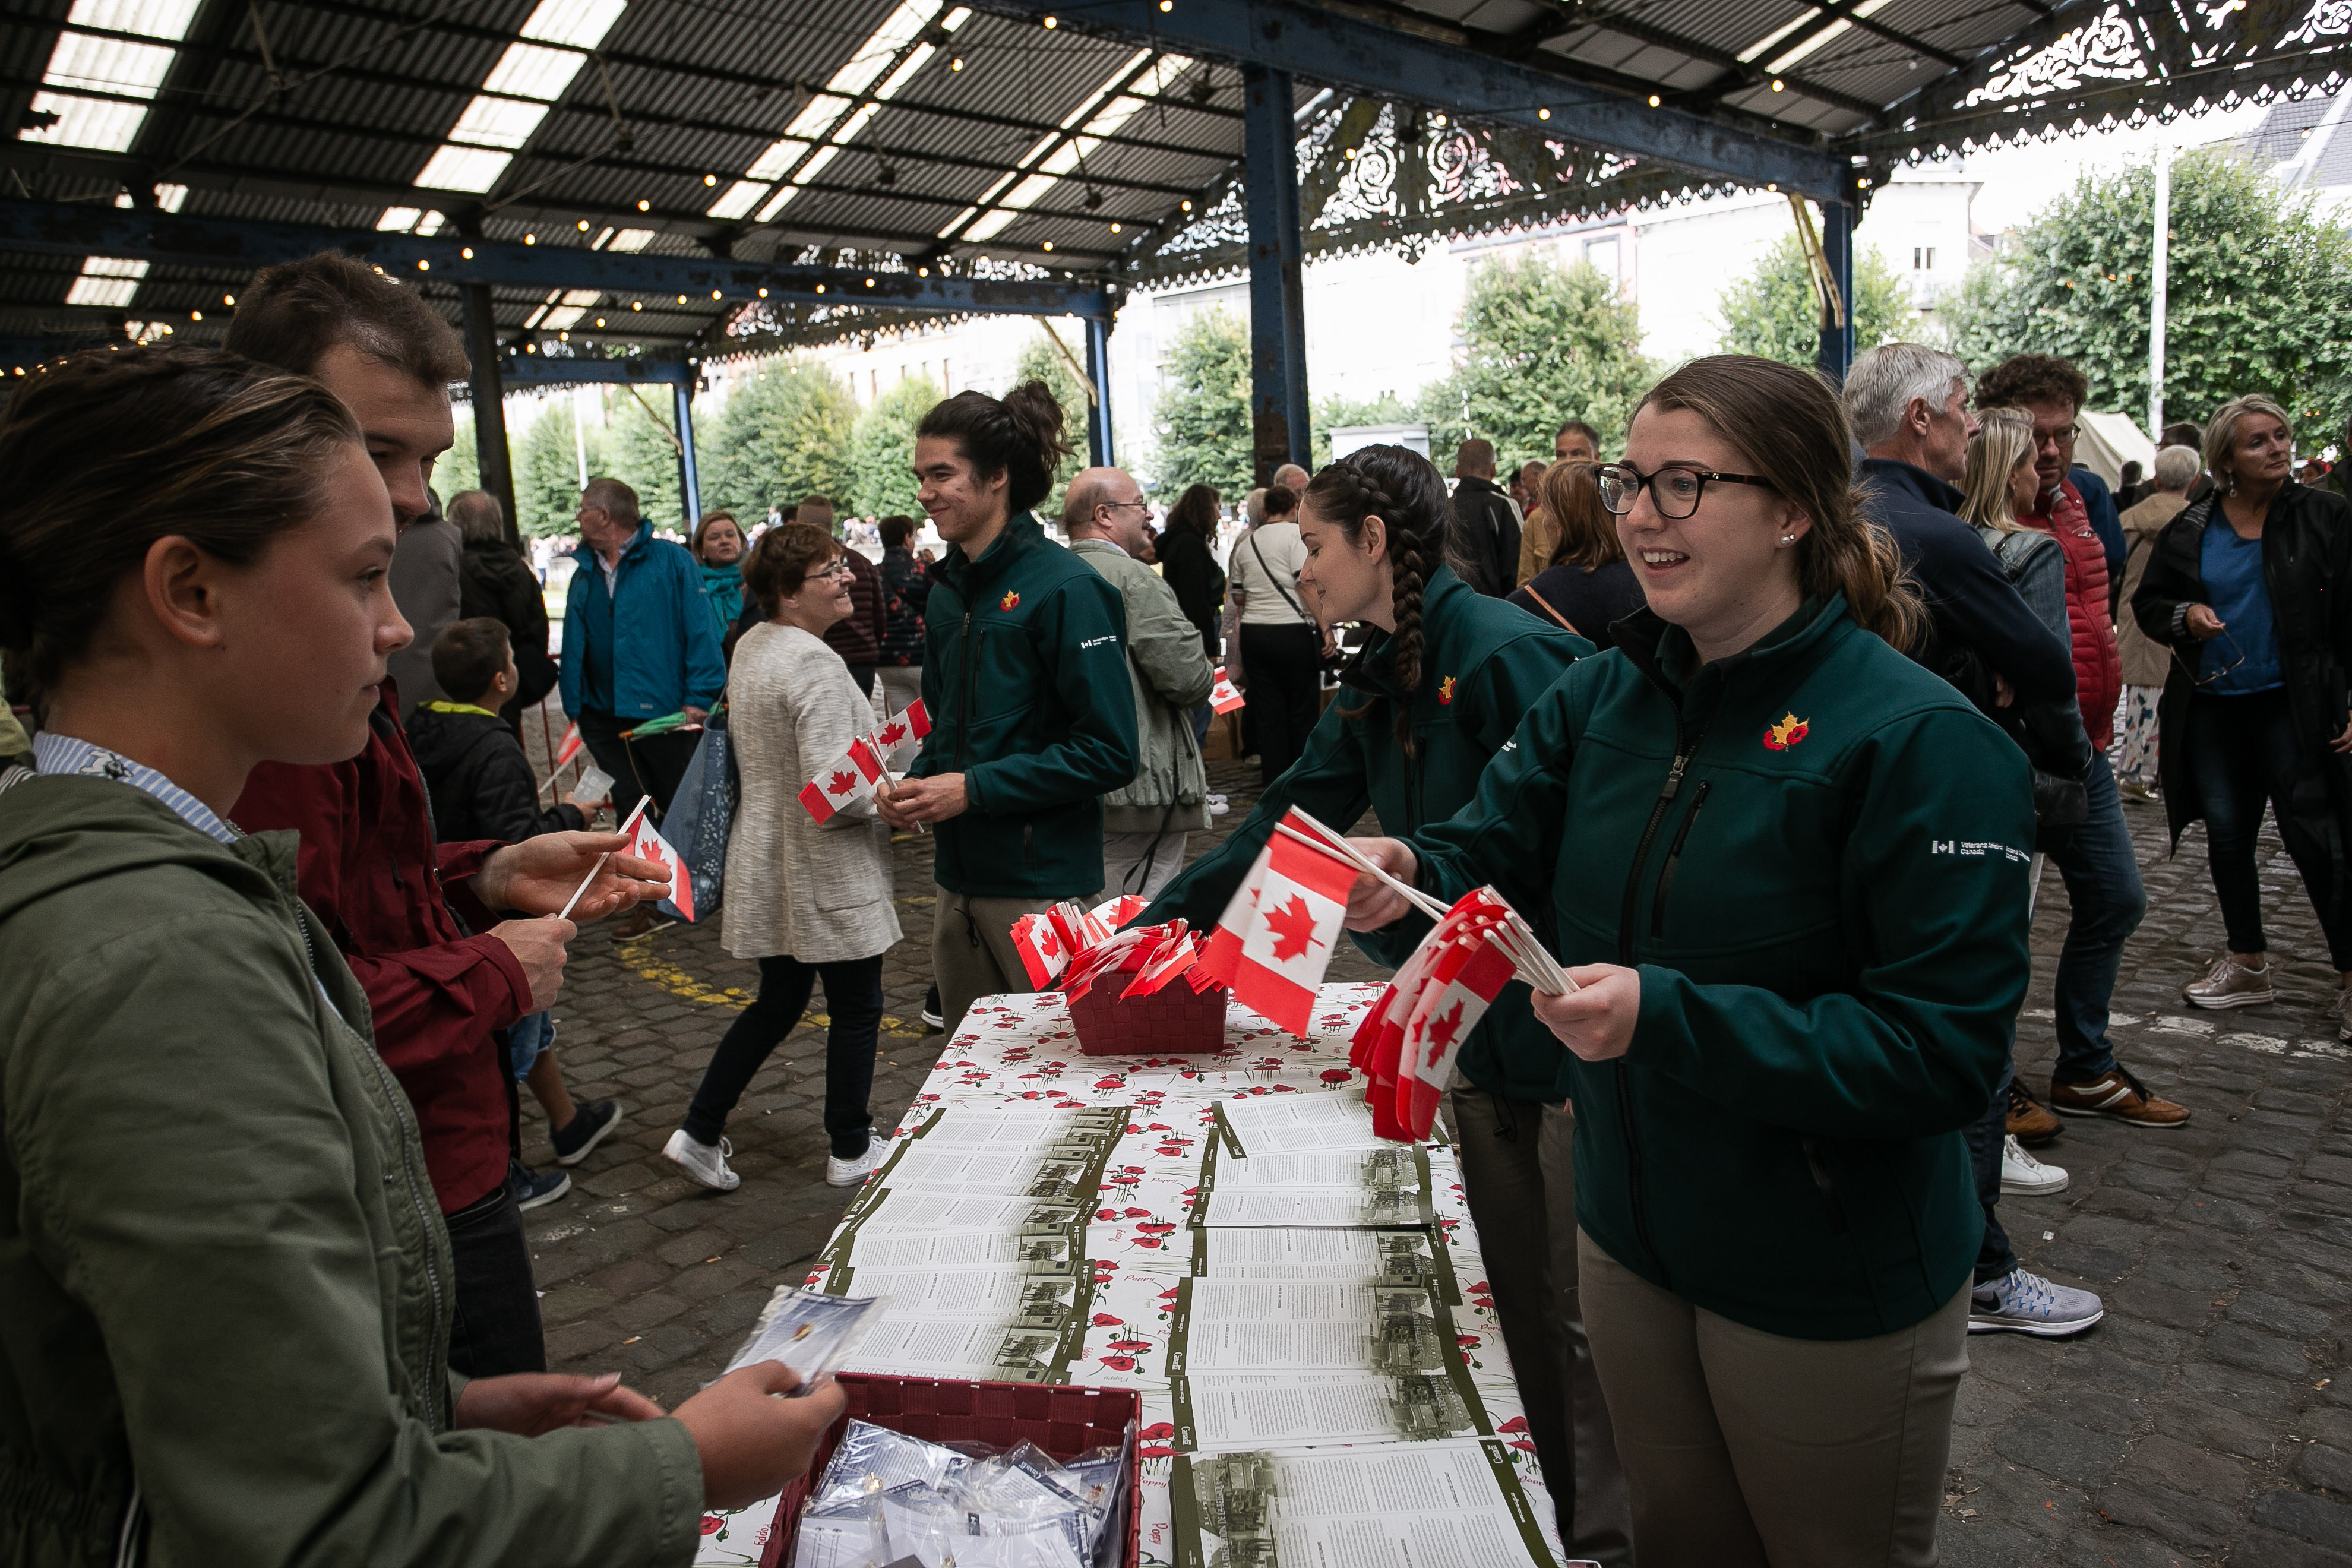 Claire Belliveau interacted with Belgian locals who visited the Liberation Village and the interactive Canadian Exhibit  earlier this year in Antwerp, Belgium.""